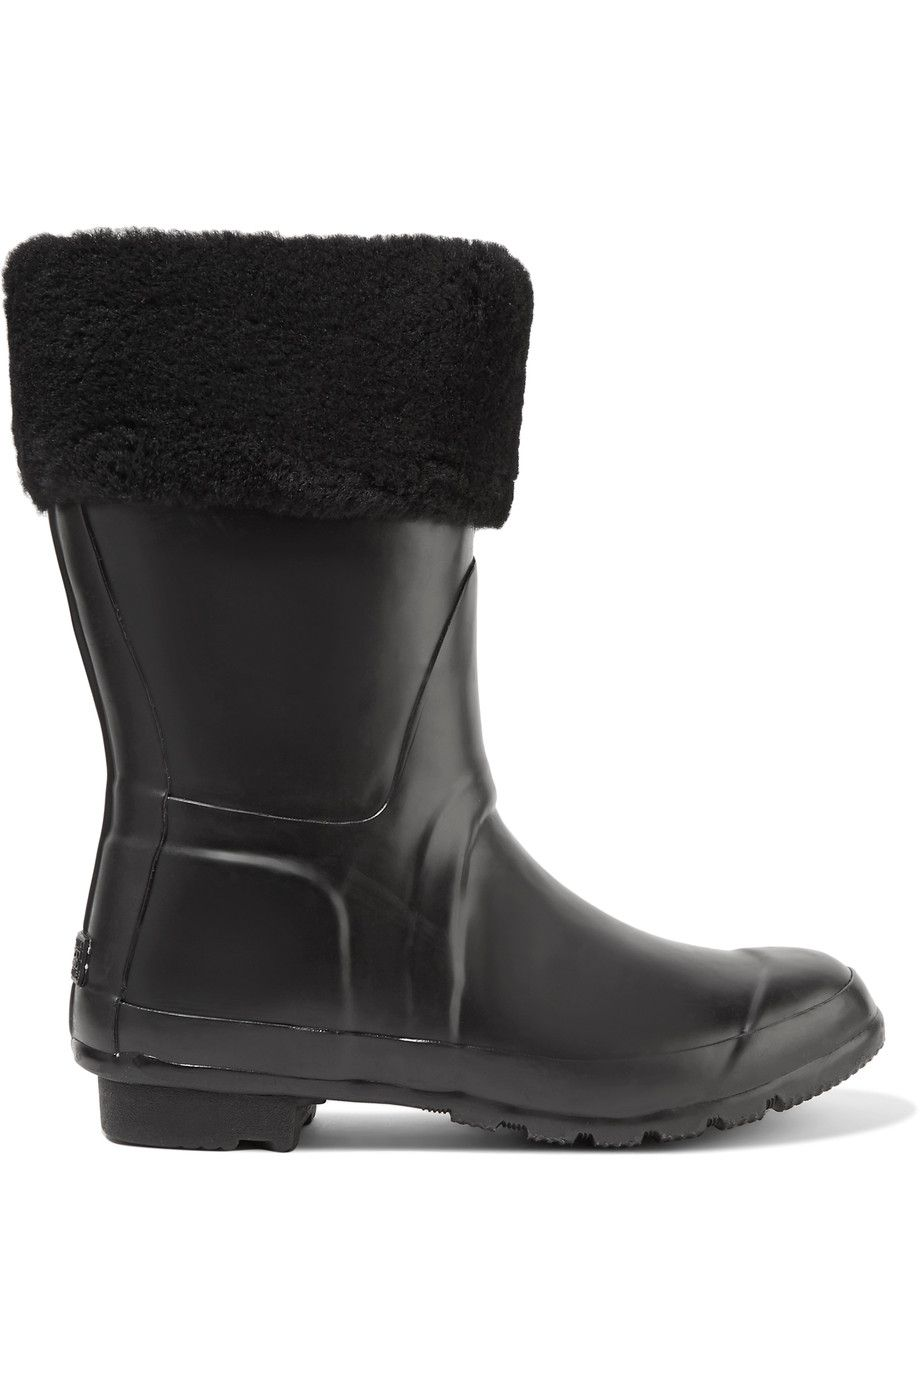 Australia Luxe Collective Woman Dukes Shearling-trimmed Rubber Rain Boots Size 7 6eH65z